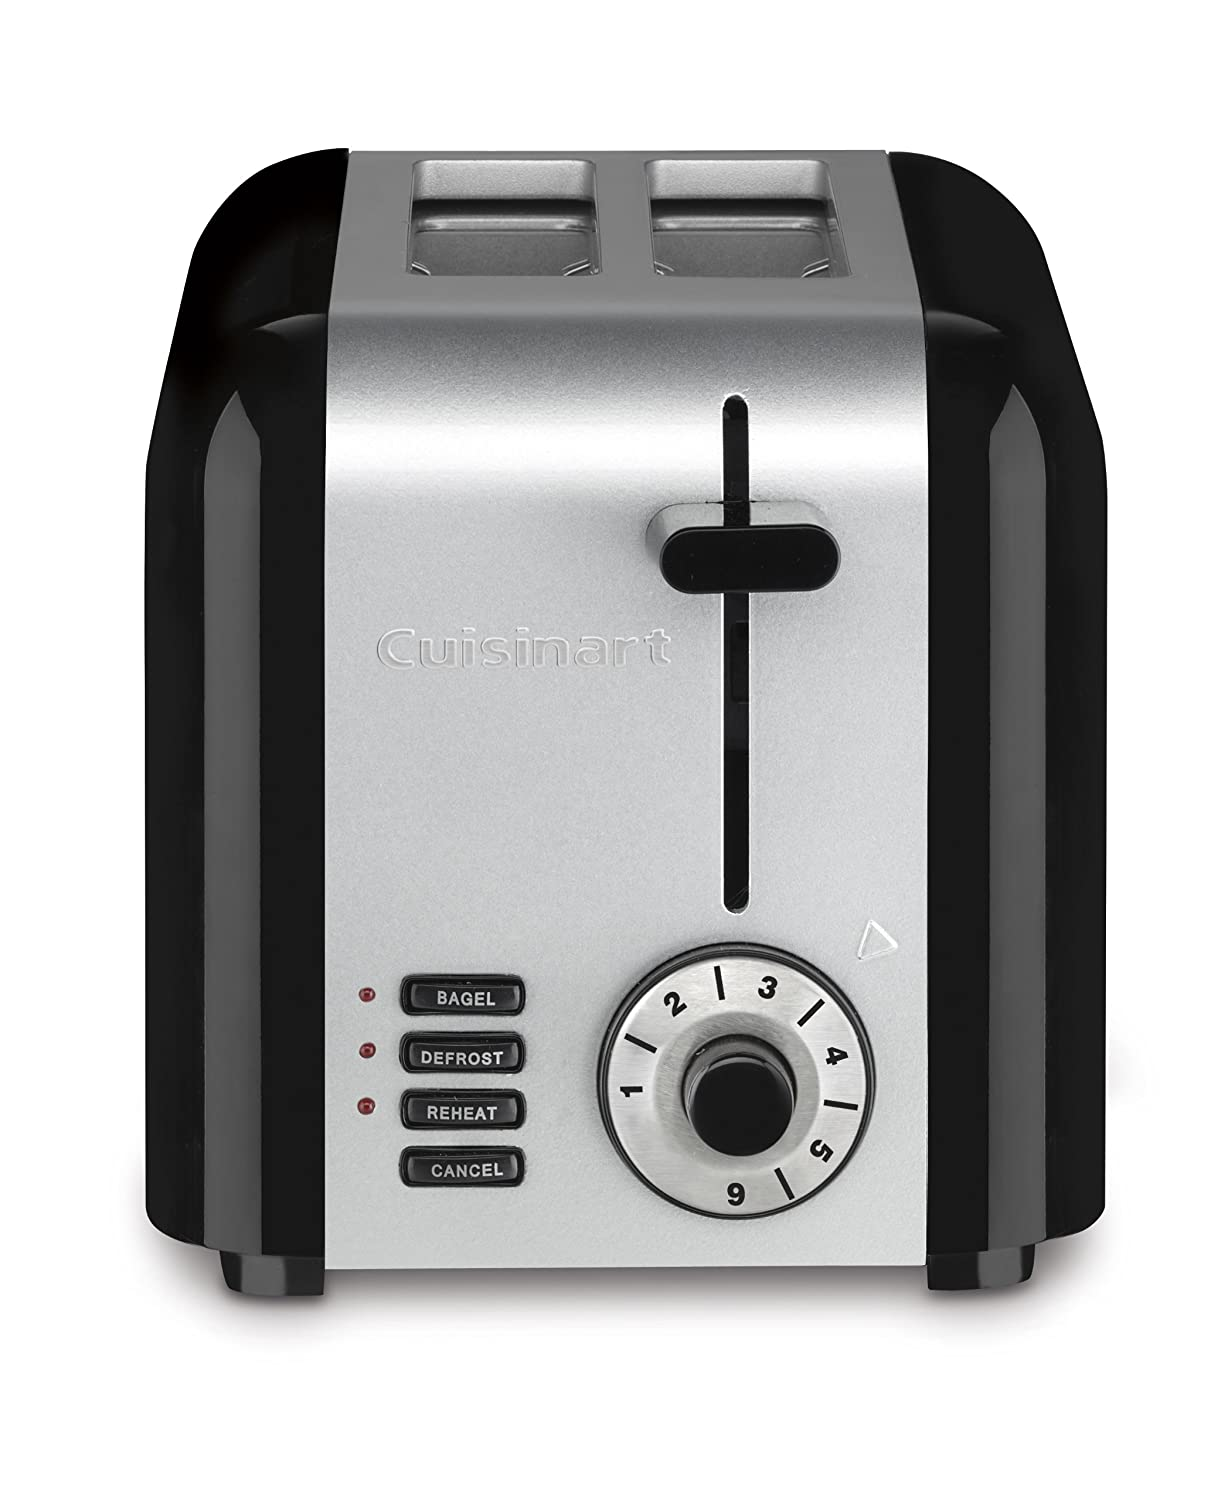 6. Cuisinart CPT-320 Compact Stainless 2-Slice Toaster, Brushed Stainless